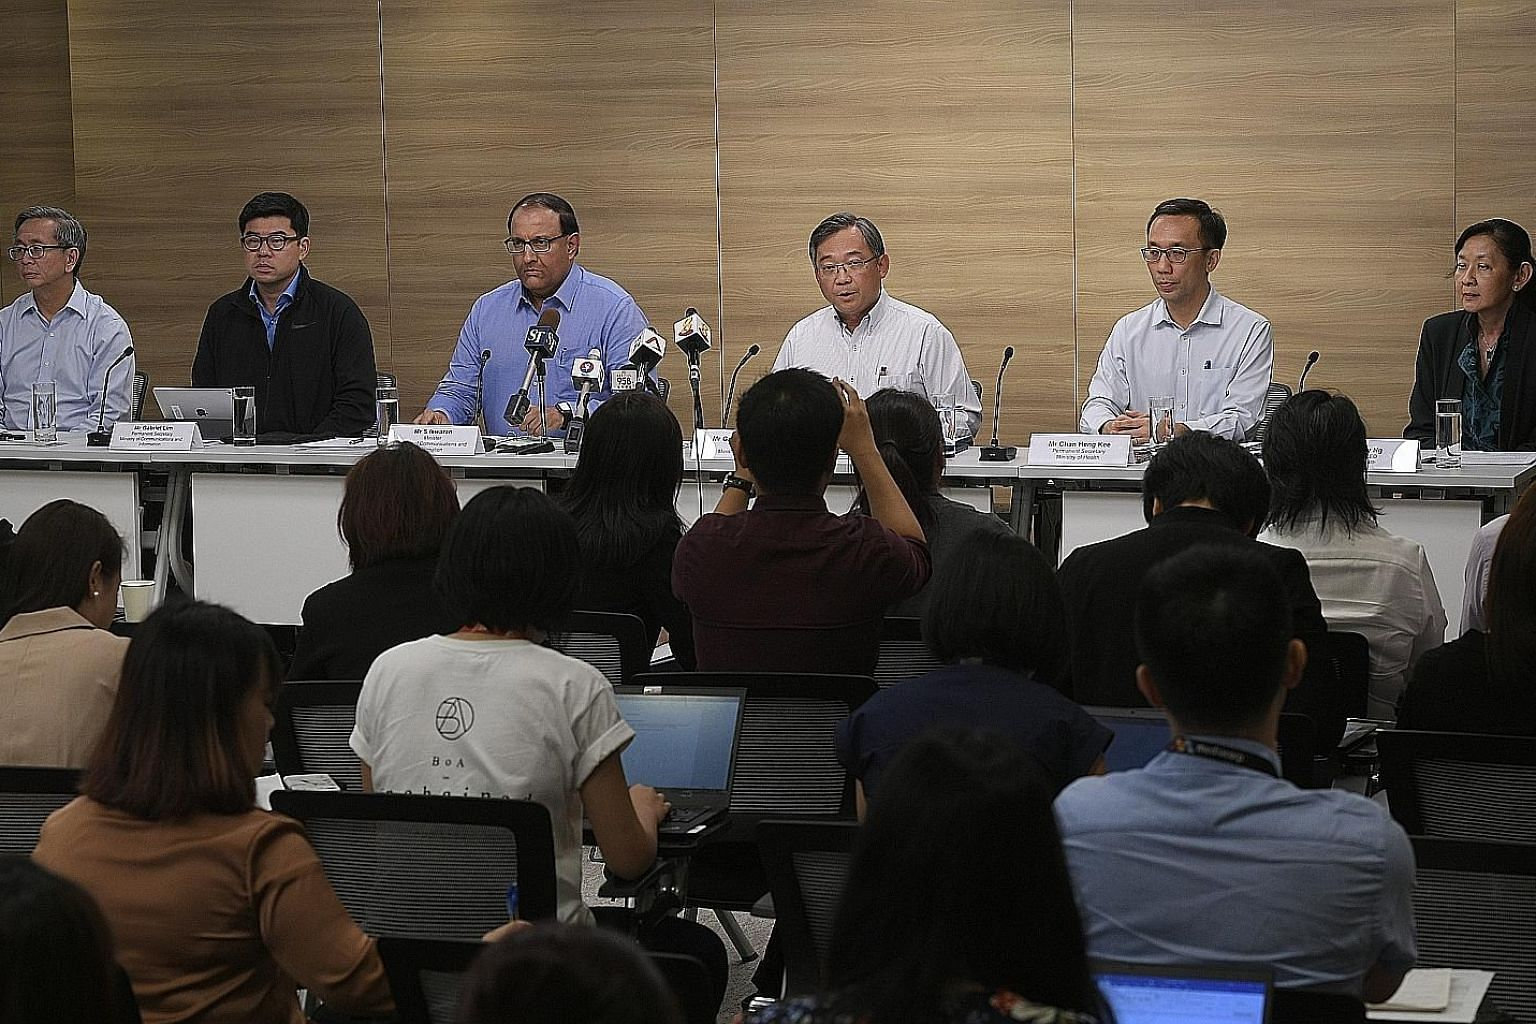 (From far left) Cyber Security Agency chief executive David Koh; MCI Permanent Secretary Gabriel Lim; Minister for Communications and Information S. Iswaran; Health Minister Gan Kim Yong; MOH Permanent Secretary Chan Heng Kee; and SingHealth CEO Ivy